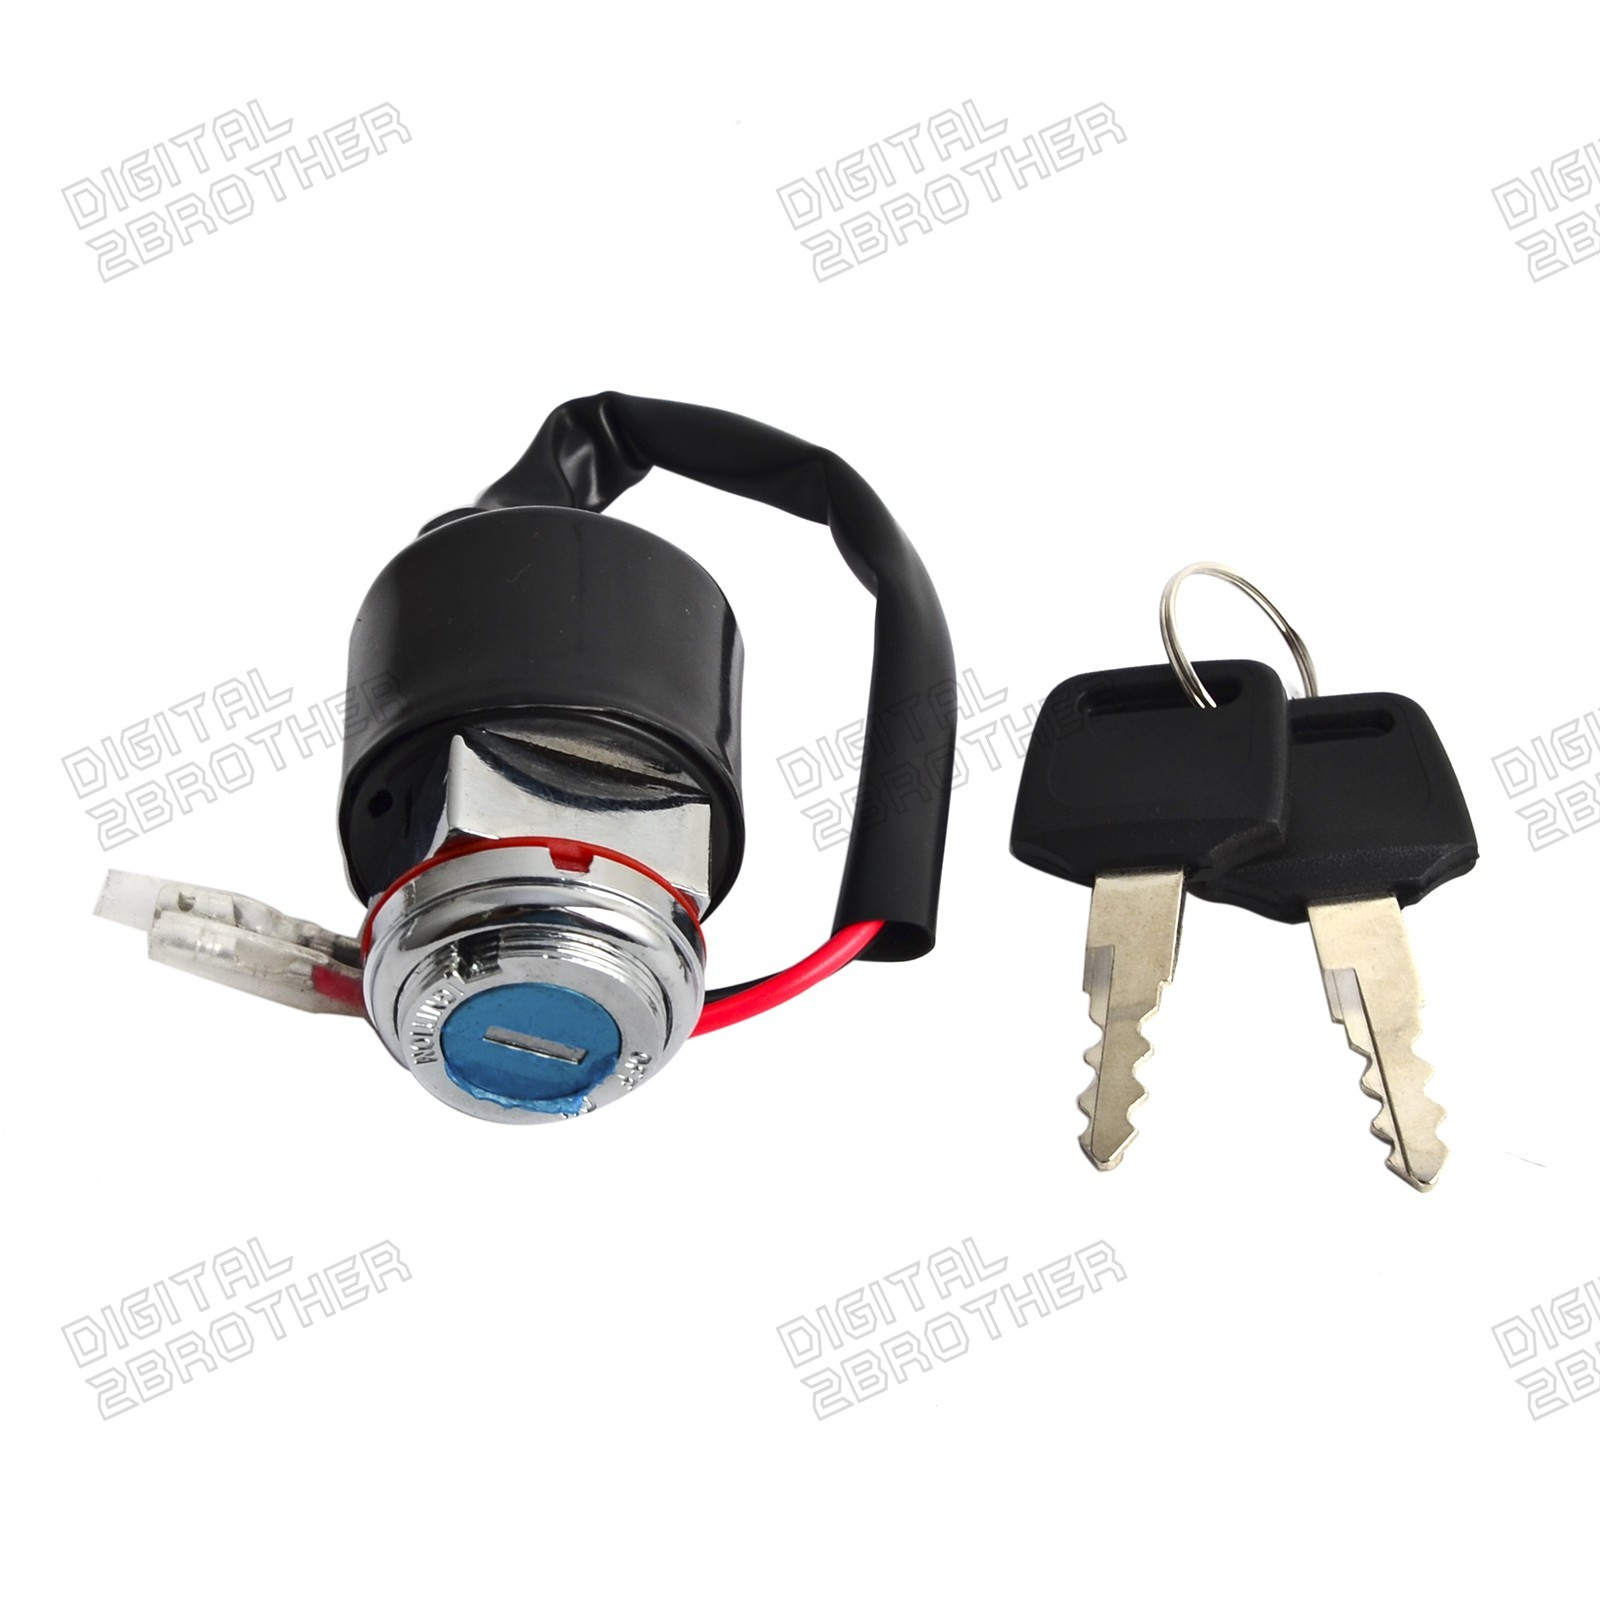 Ignition Key Switch 2 Wires For Honda CB100 1970-1972 CB125S 73-75 CT90 69- 79